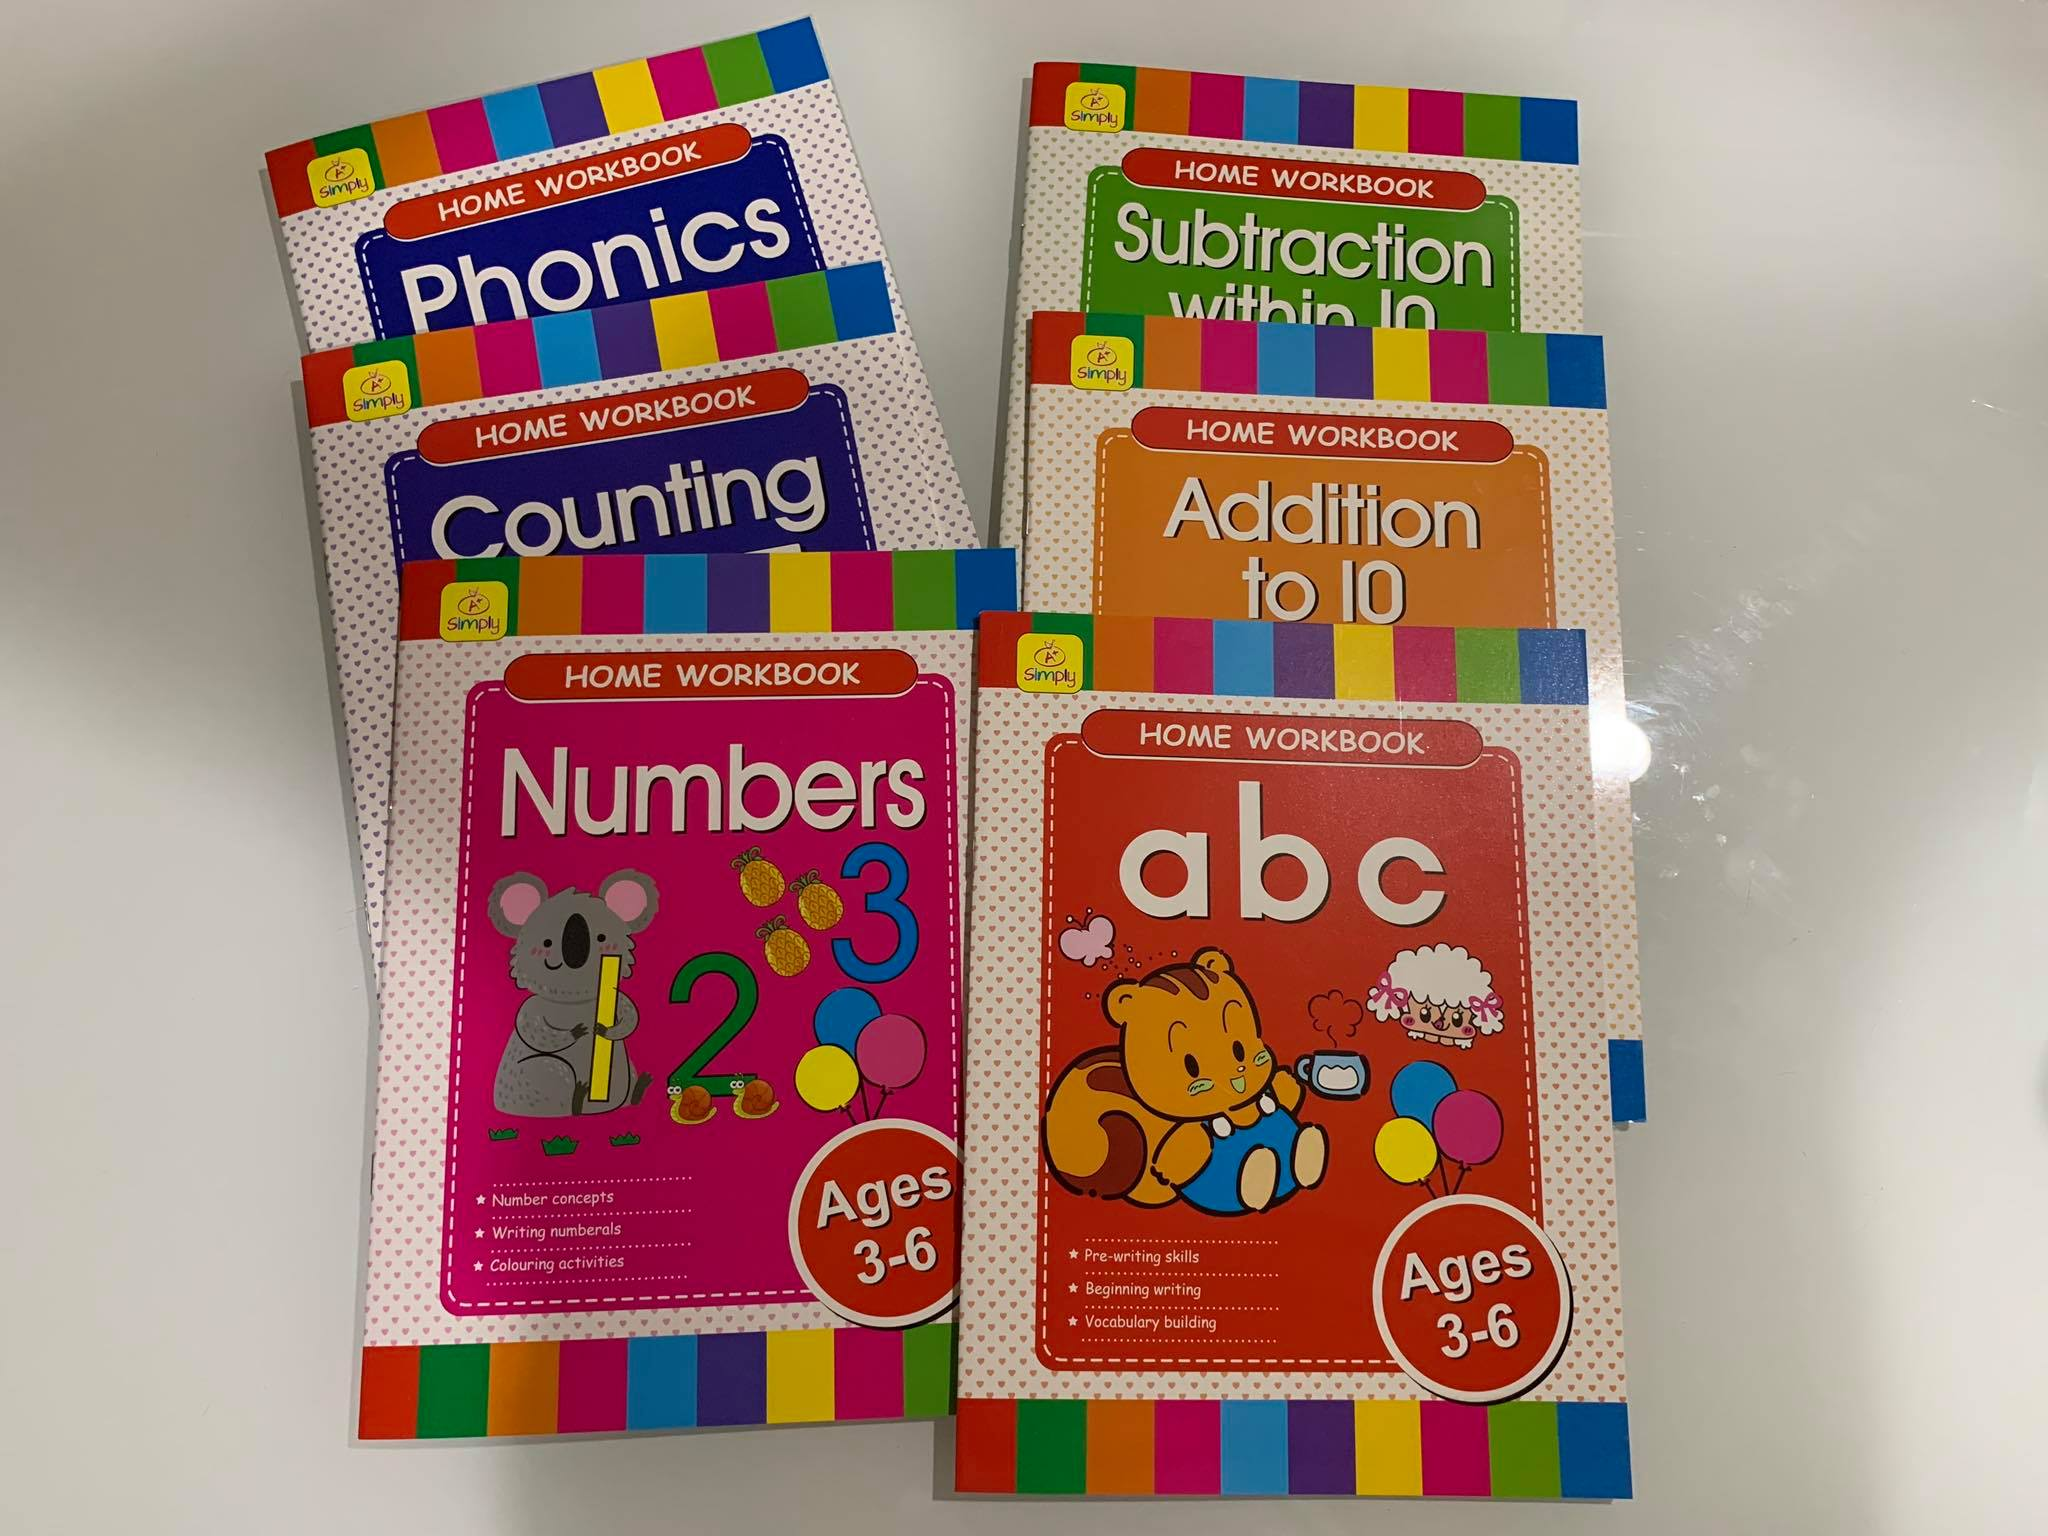 CHILDREN/'S LEARNING HOME WORKBOOK    NUMBERS   AGE 3-6   40 PAGE BOOKLET